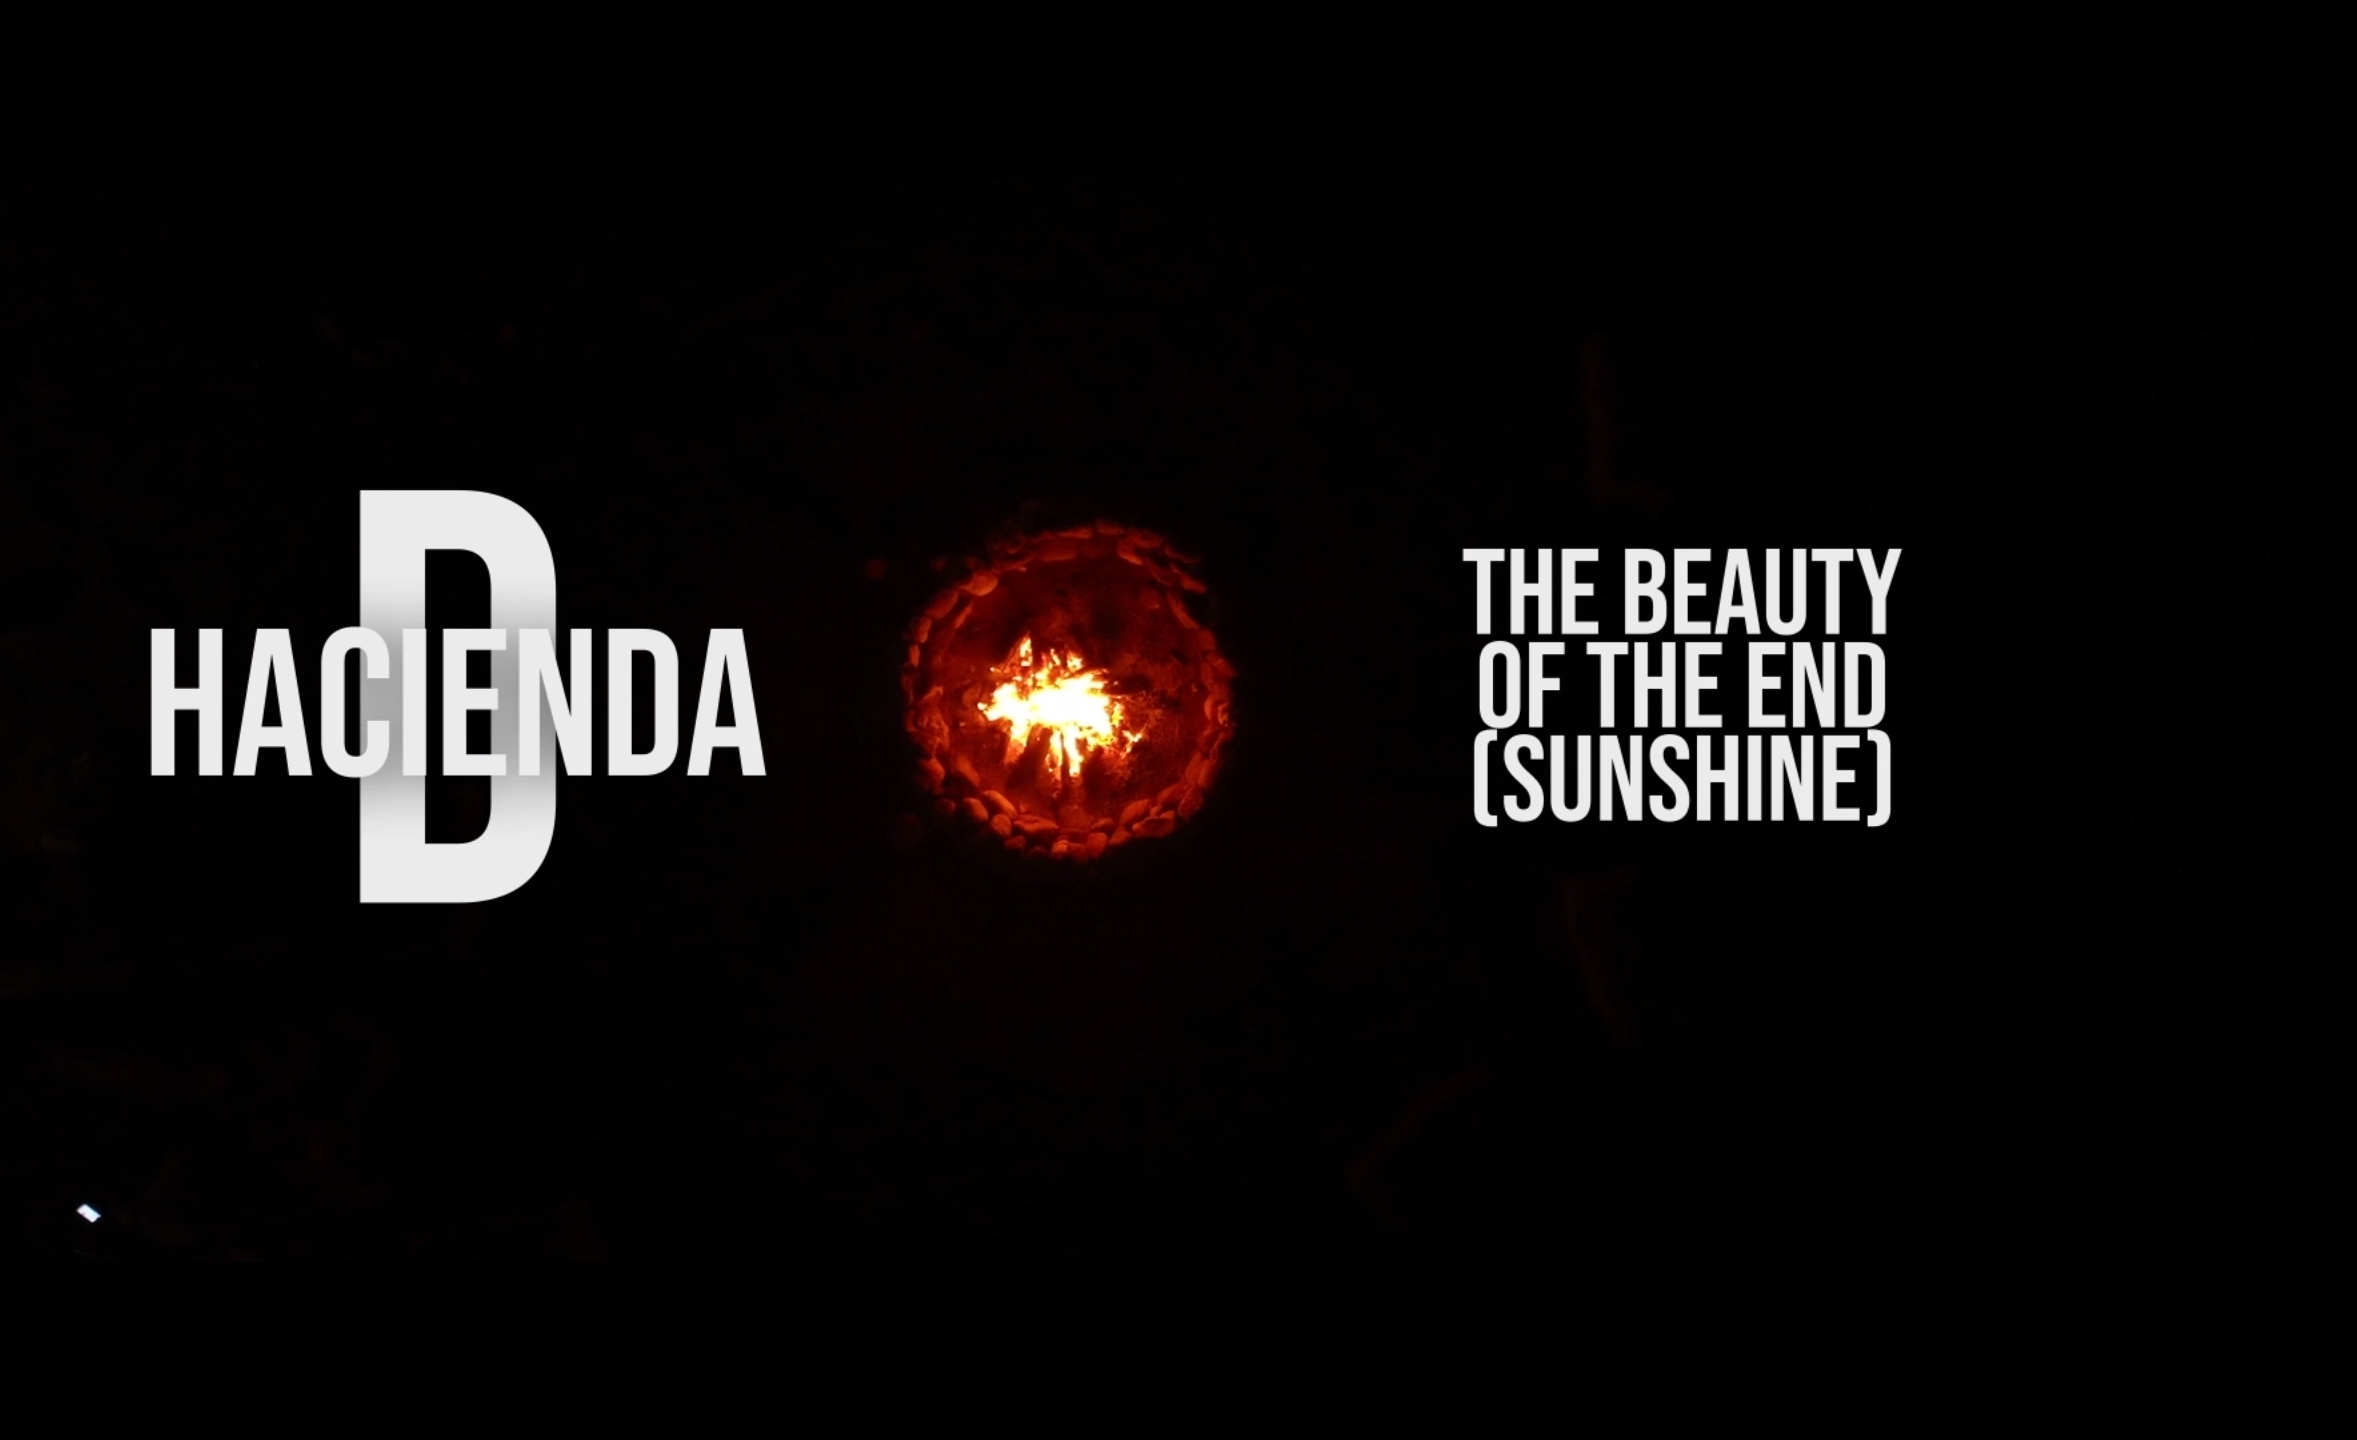 Hacienda D – The Beauty of the End (sunshine)